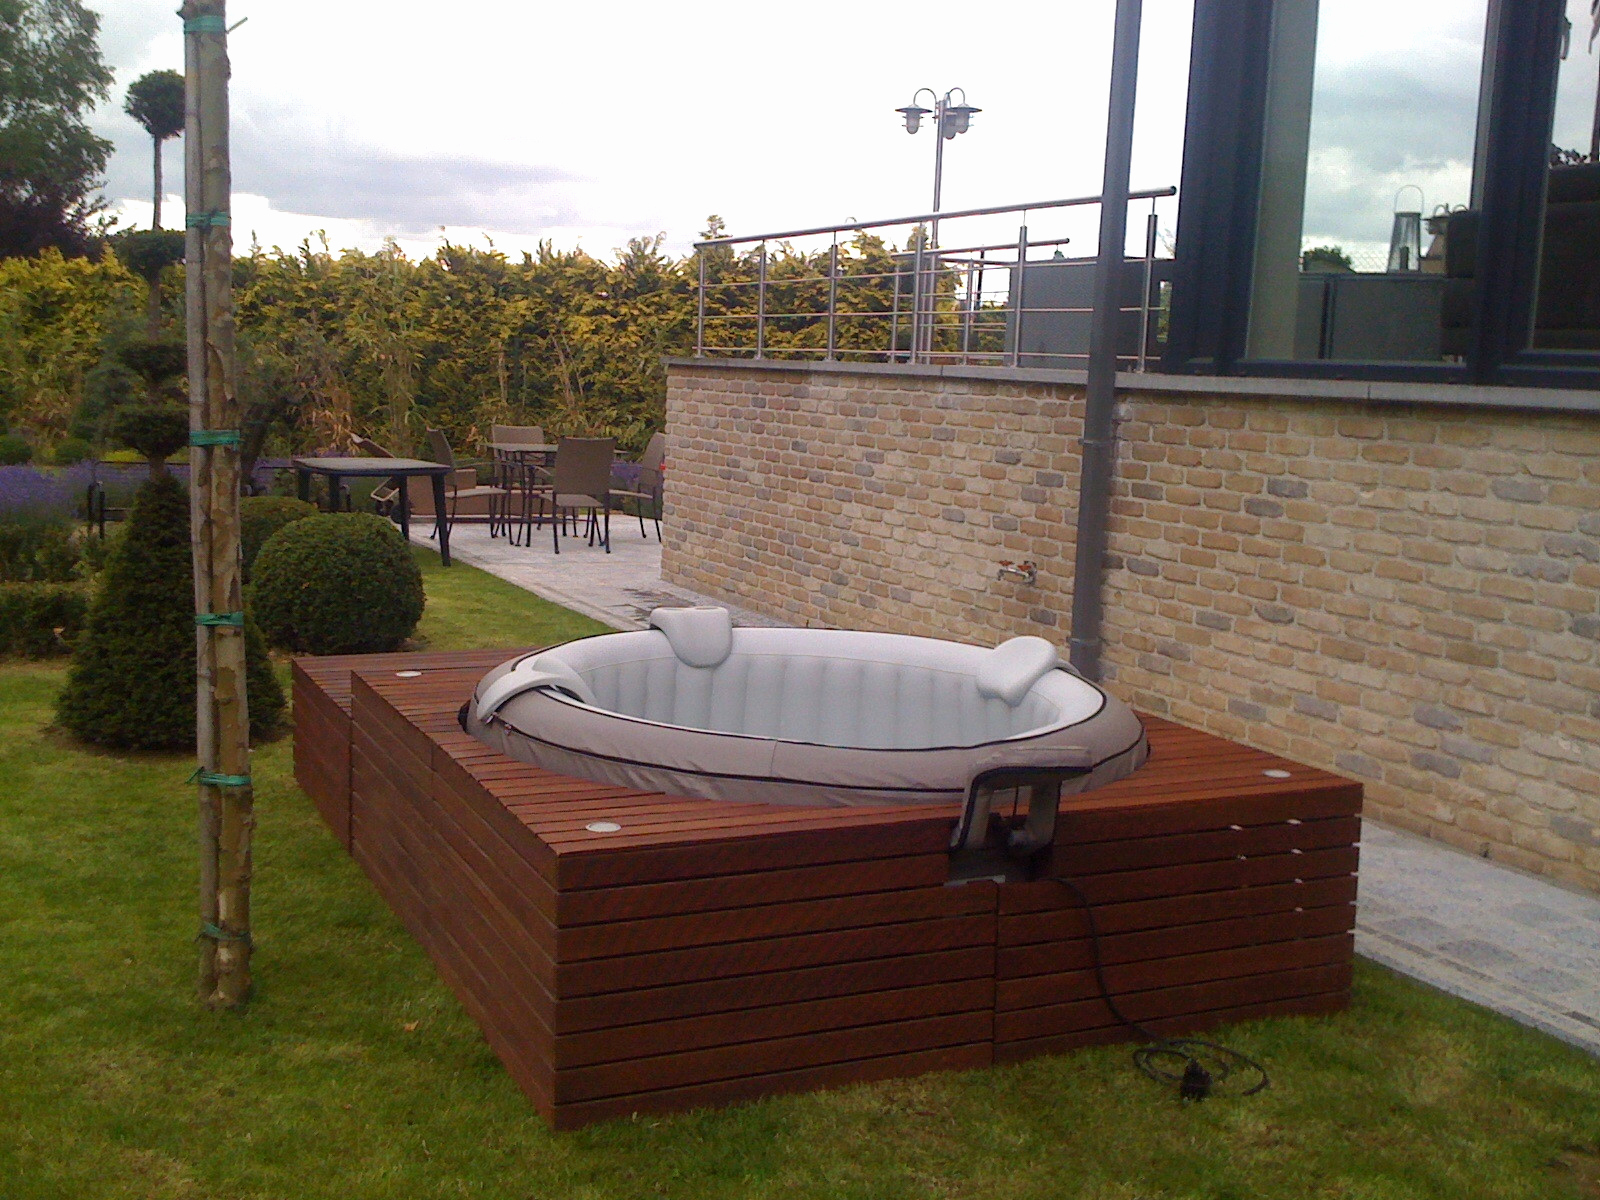 Habillage Pour Spa Gonflable Habillage Pour Spa Gonflable